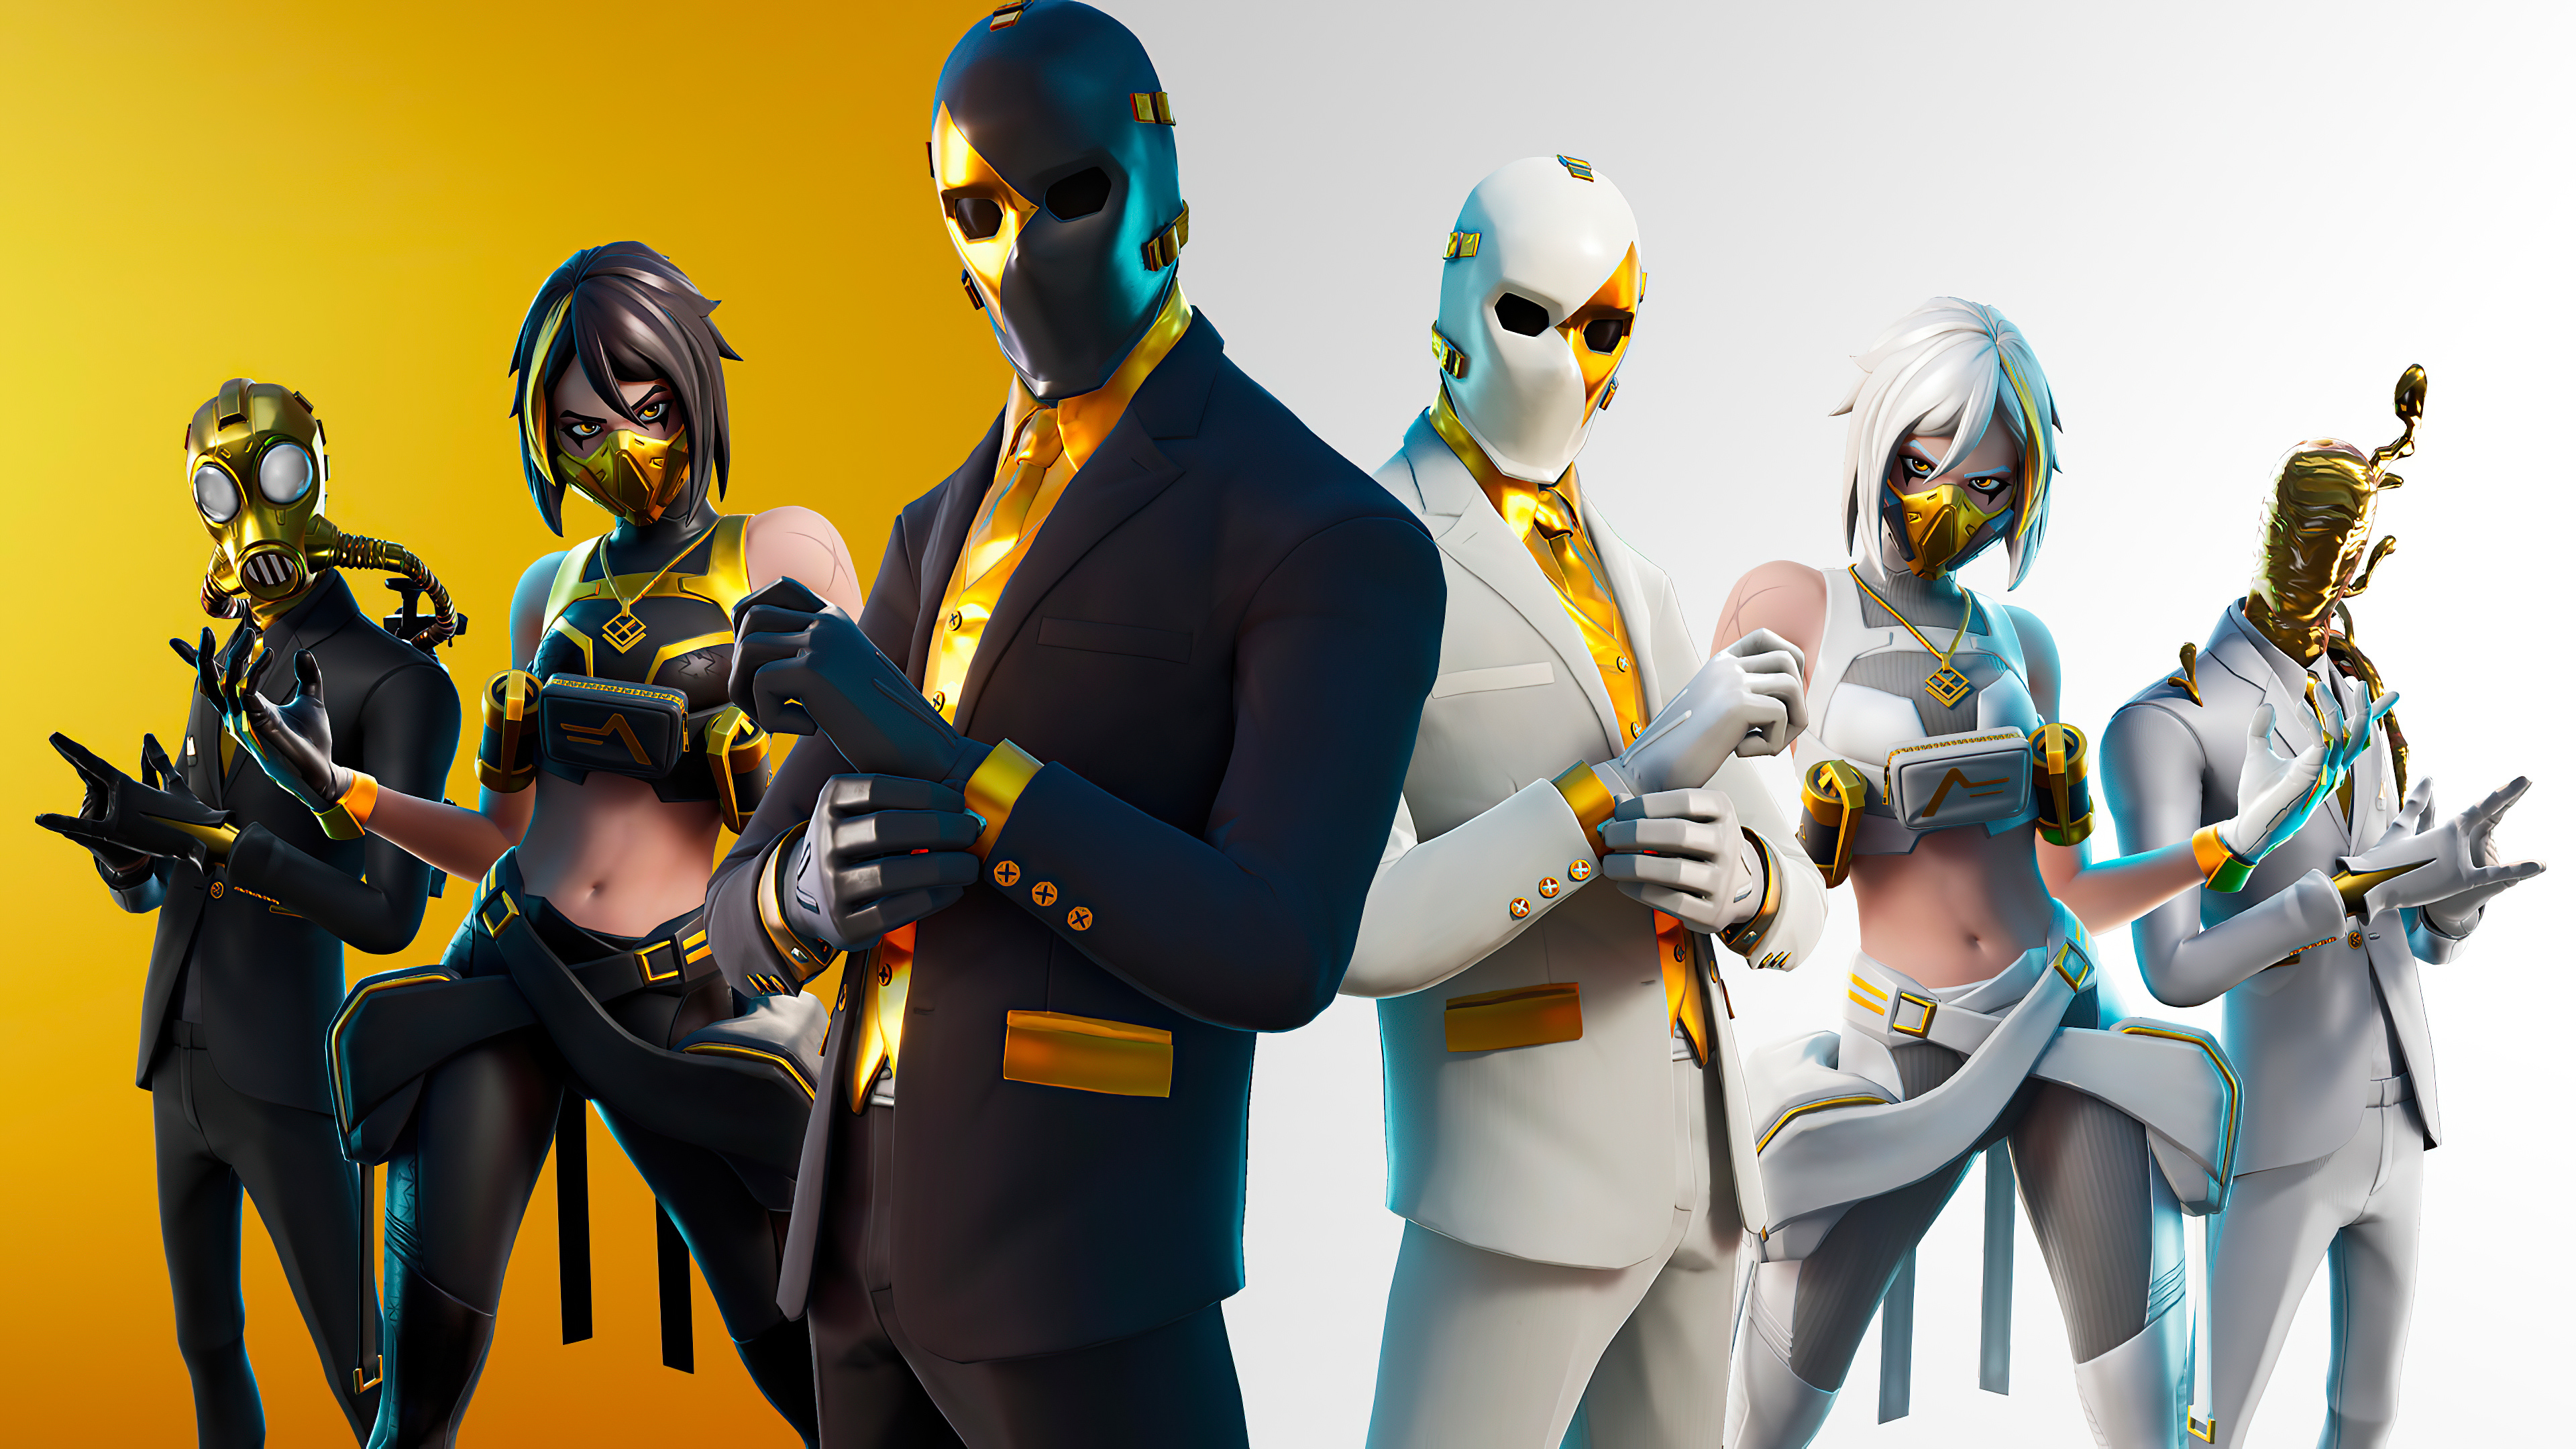 240x400 Fortnite Shadow And Ghost Team Acer E100 Huawei Galaxy S Duos Lg 8575 Android Wallpaper Hd Games 4k Wallpapers Images Photos And Background